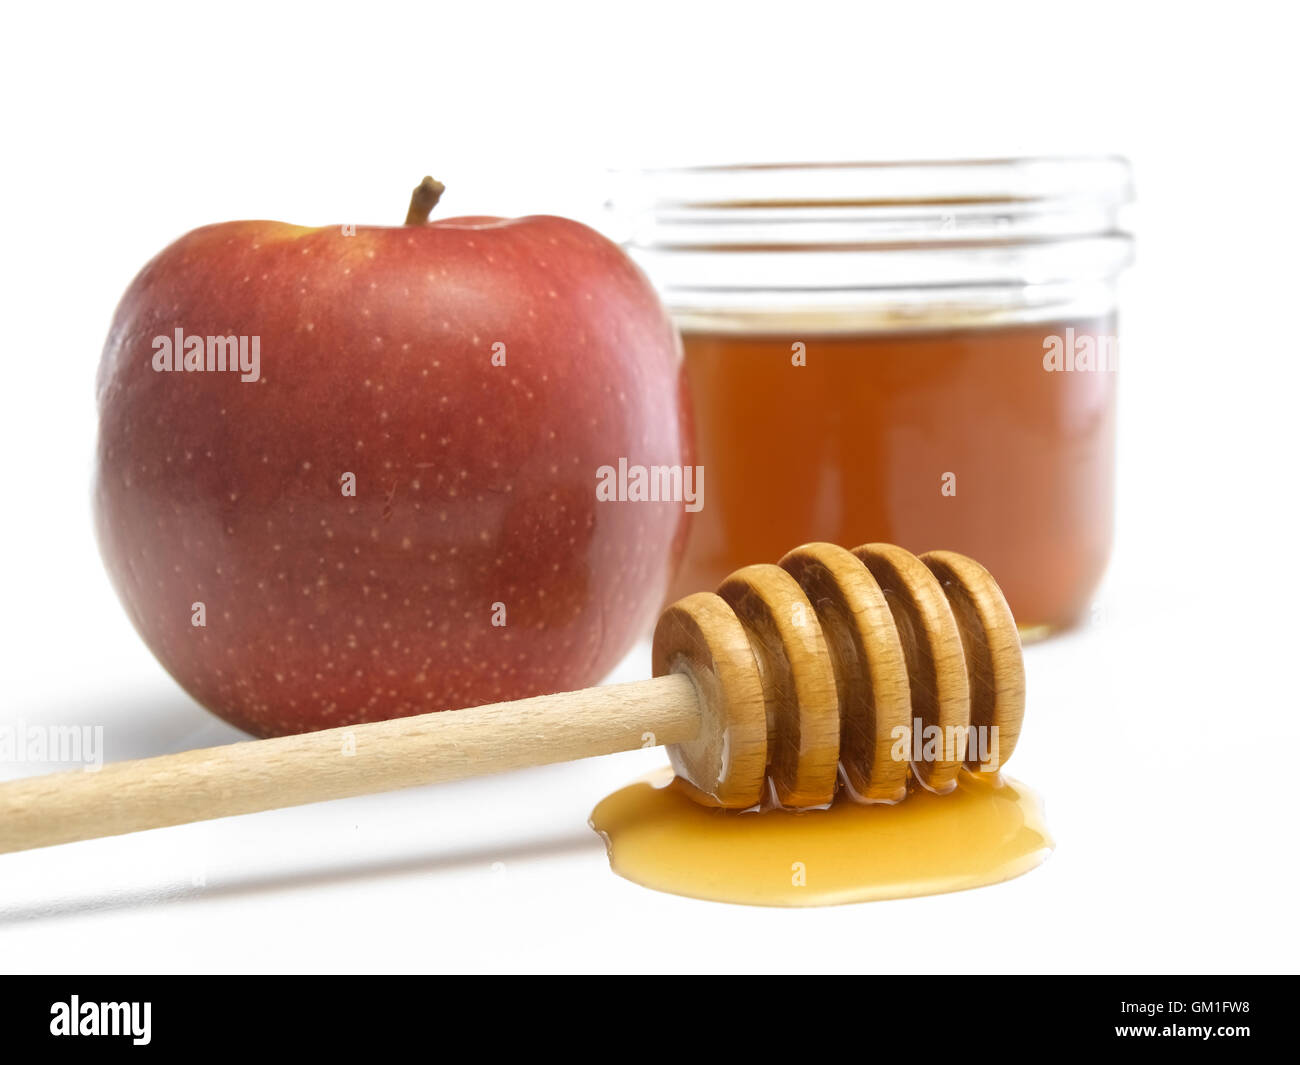 Runny honey with a wooden dipper and a red apple - Stock Image